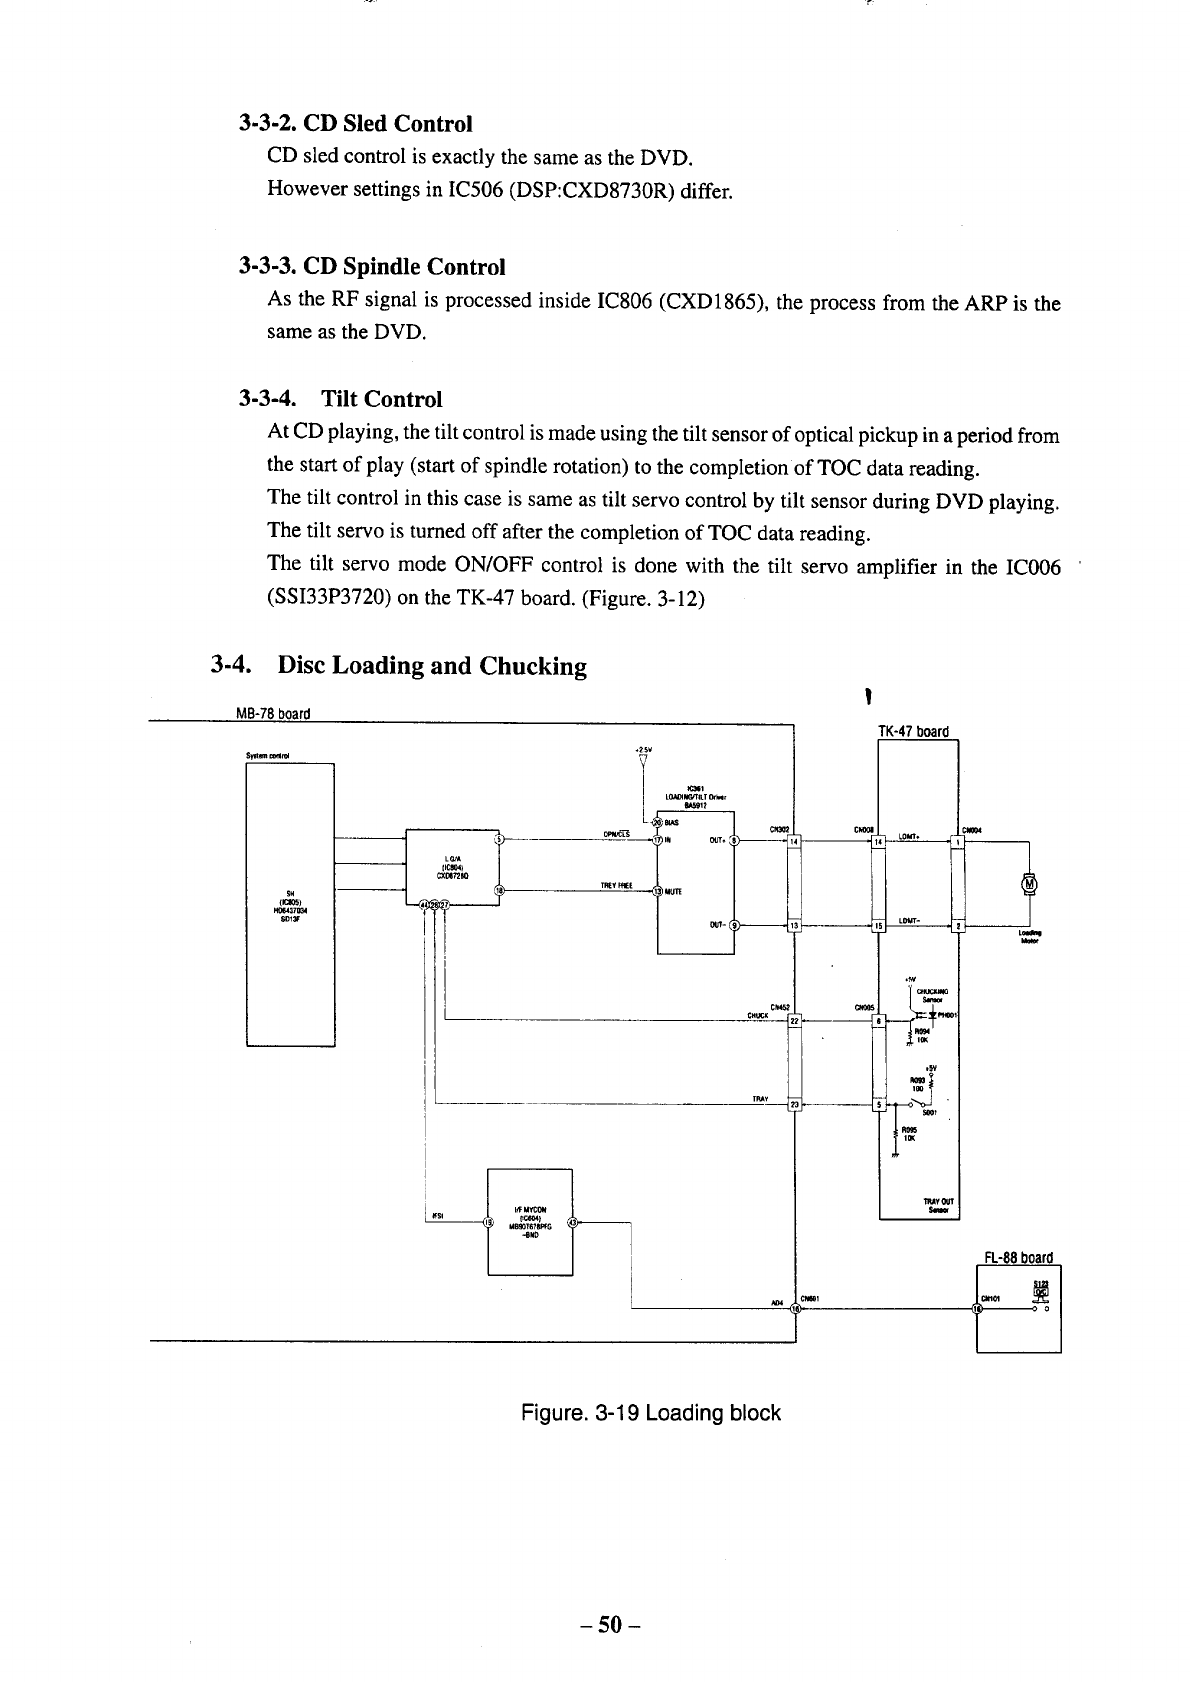 Sony Dvp S500d User Manual Cd Dvd System Manuals And Guides 98060757 Circuit Diagram For Servo Control Sled